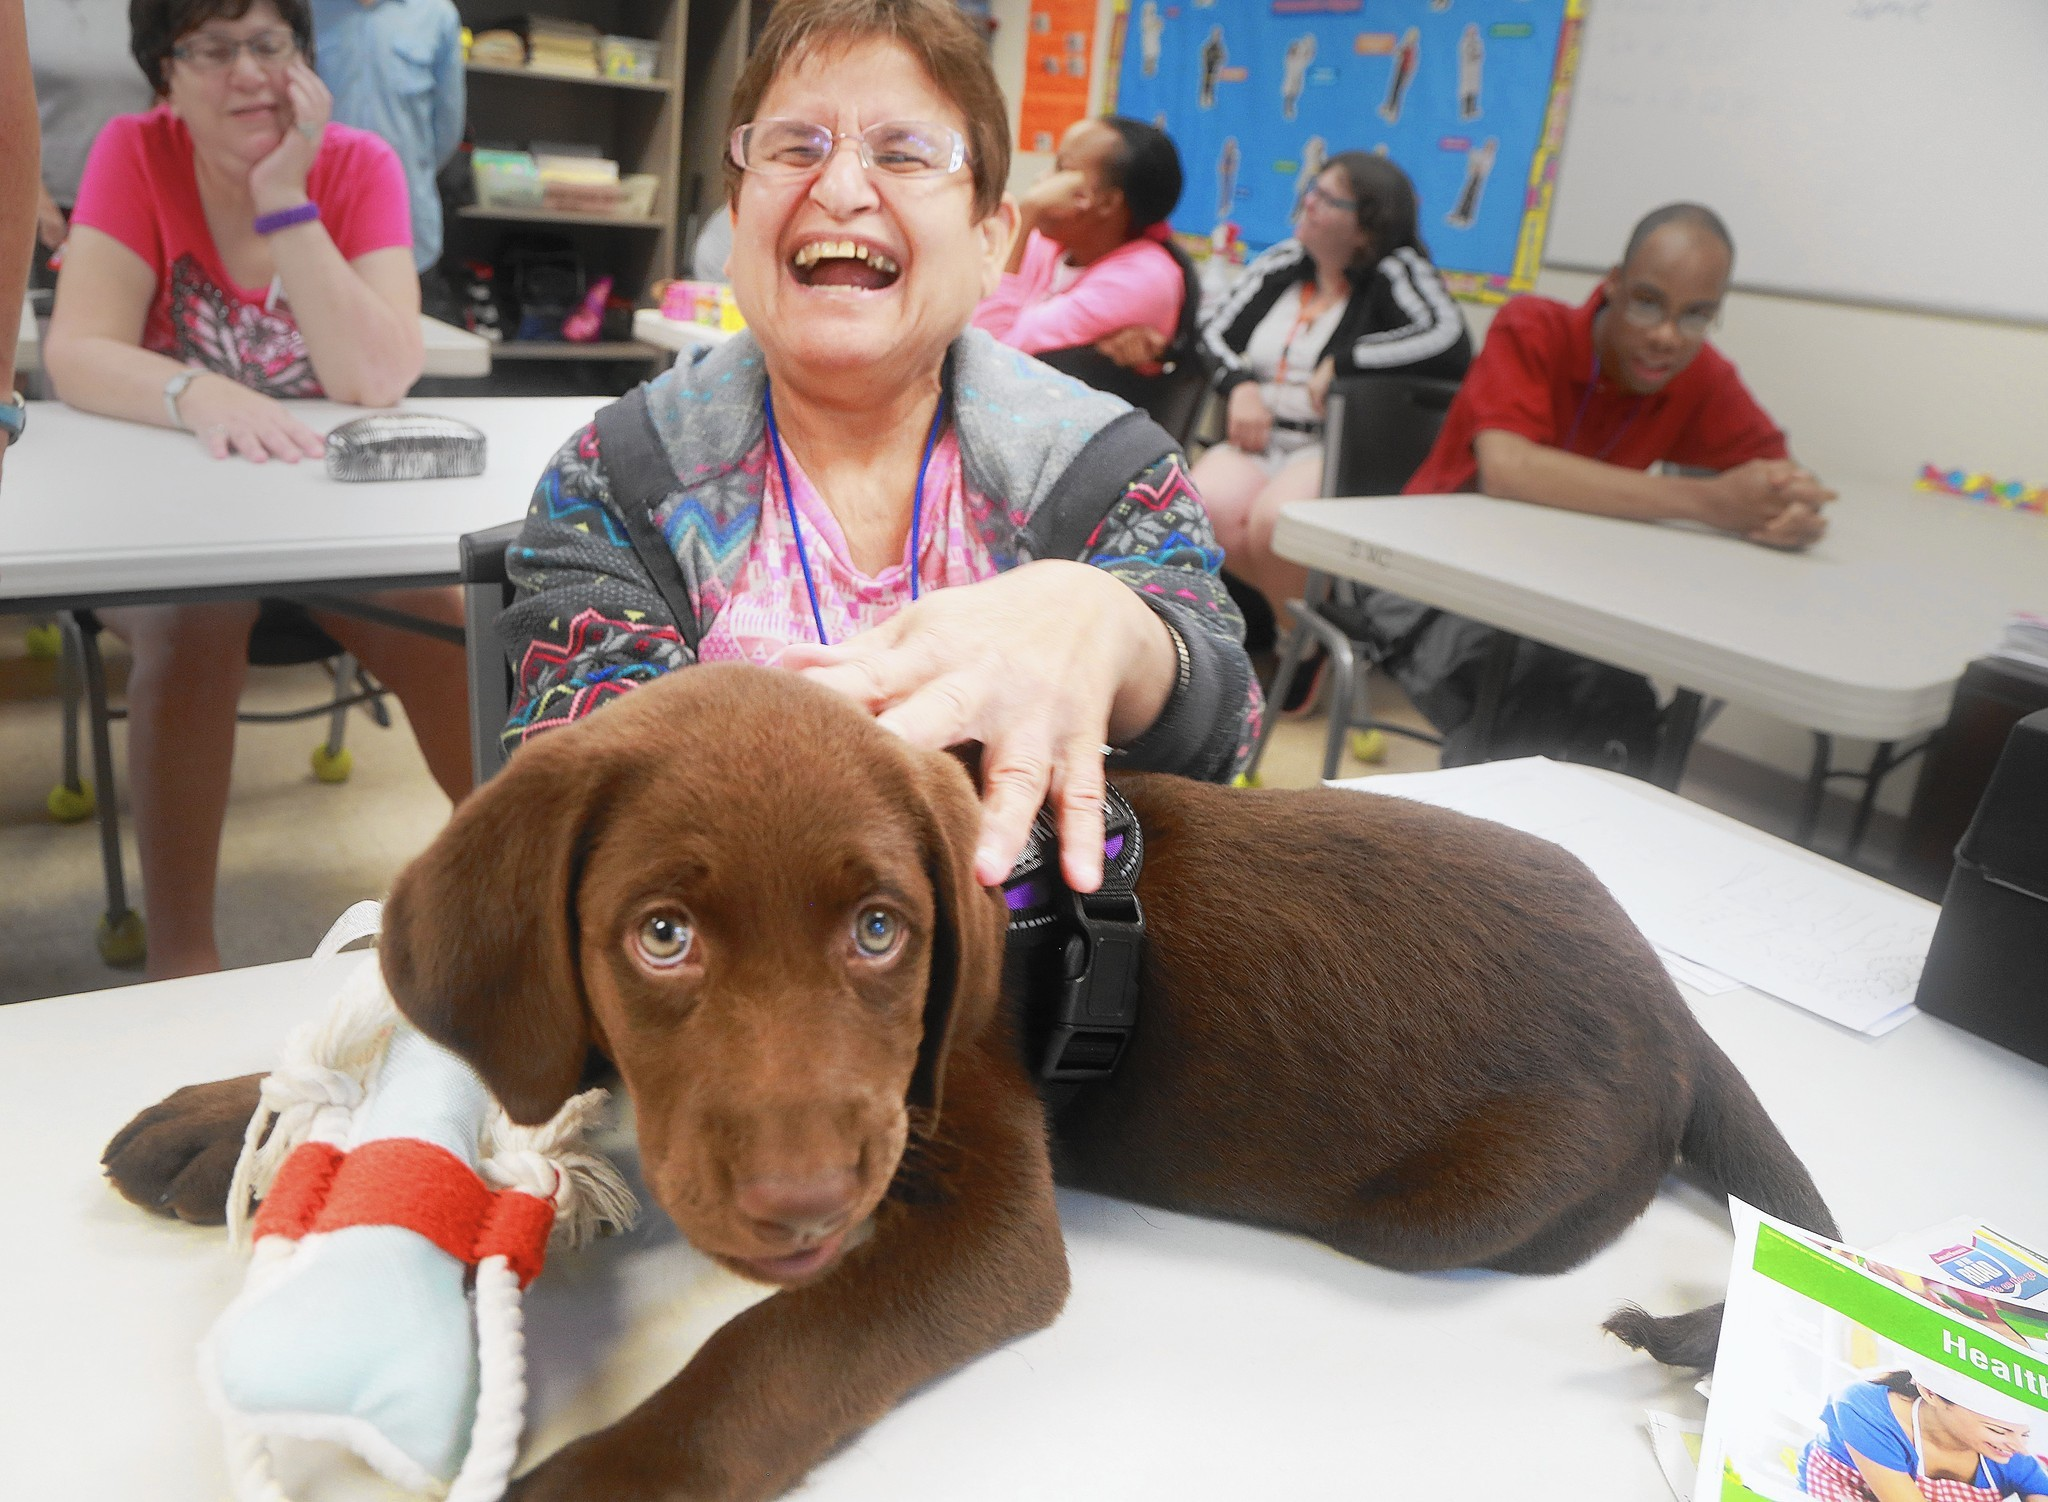 Puppy Begins Work In West Boca As Therapy Dog For Disabled